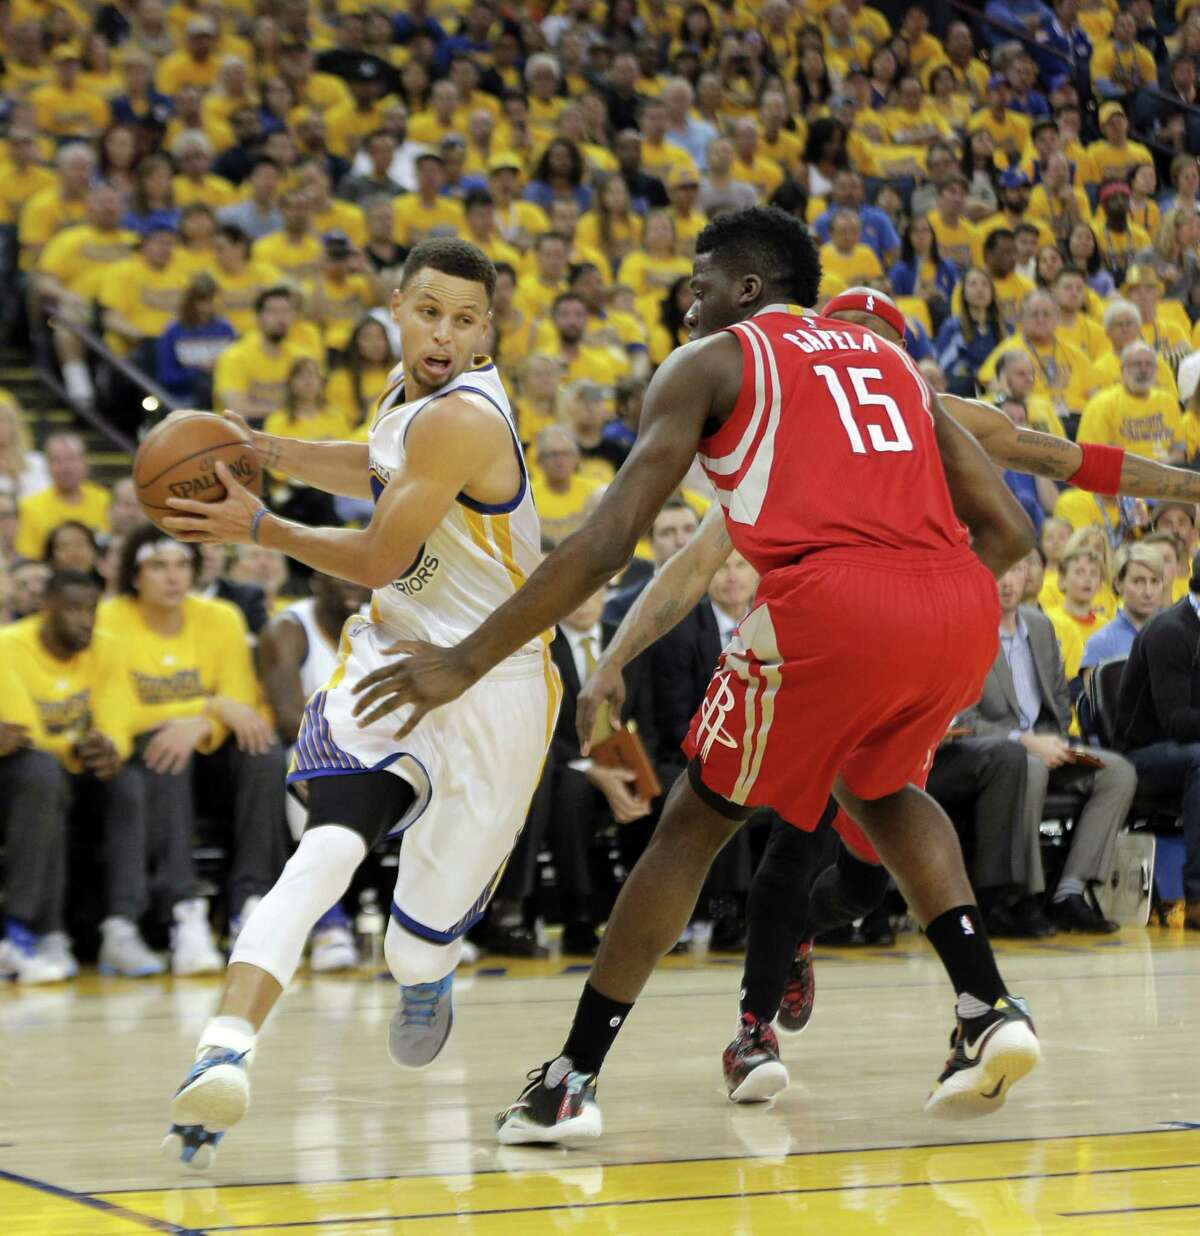 First round Game 1 April 16: Warriors 104, Rockets 78 The Warriors did not have Curry for most of the second half due to an ankle injury, but the club still rolled over the Rockets. Record: 1-0 Warriors lead series